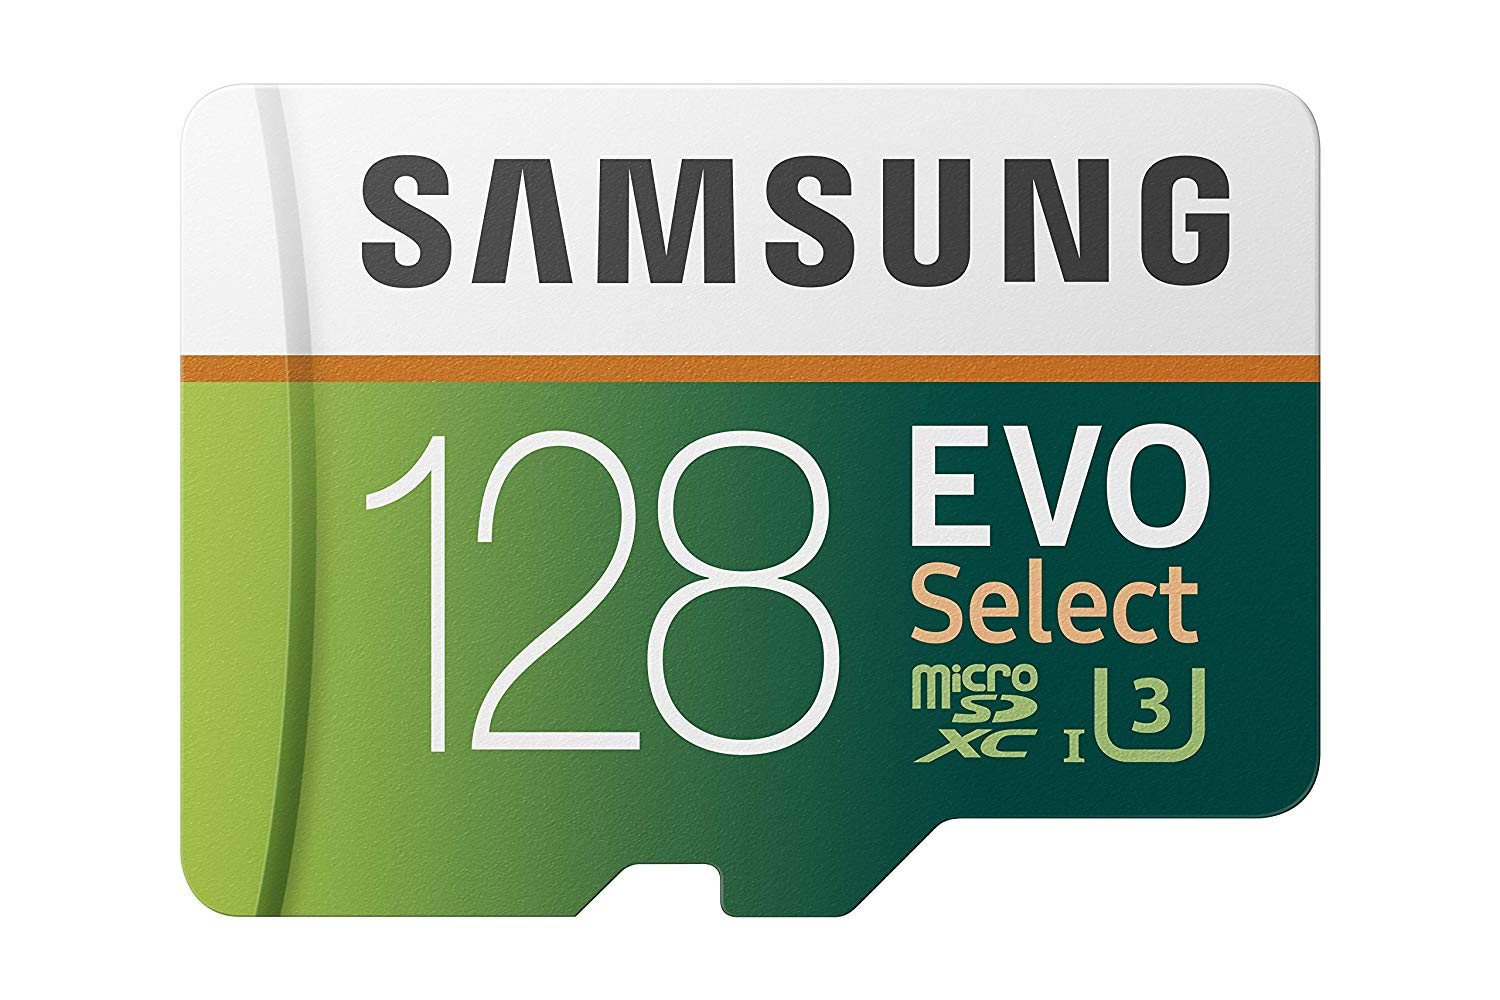 Samsung 128gb MicroSD card for Amazon Prime Day